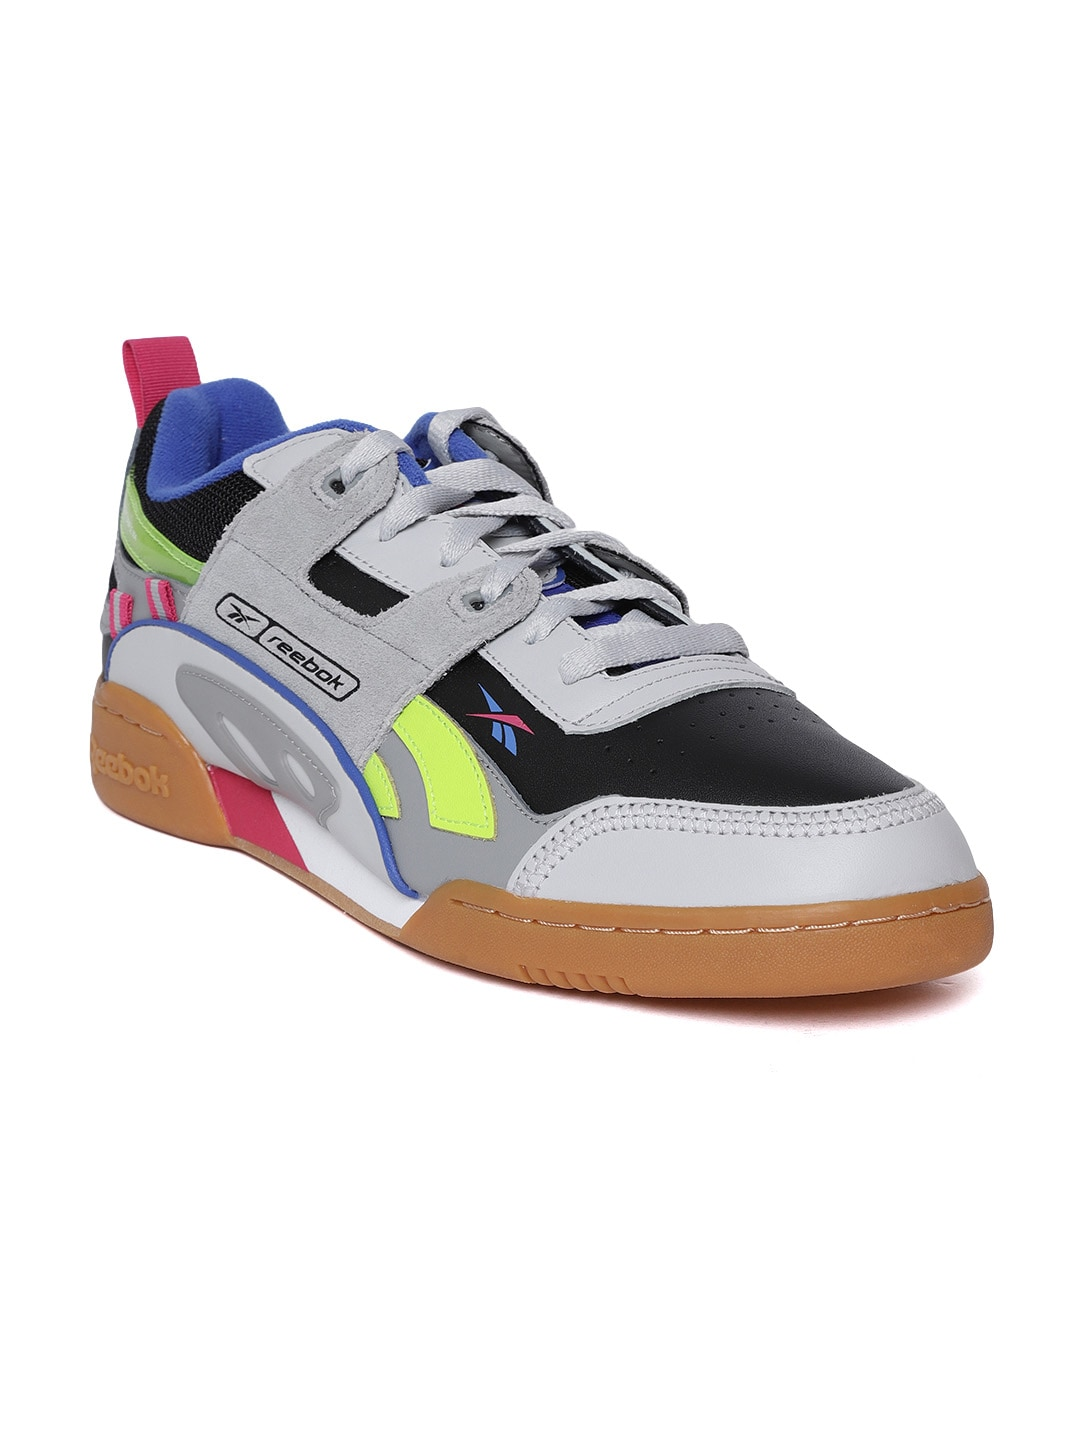 e914ee1dc0c Reebok Leather Shoes - Buy Reebok Leather Shoes online in India